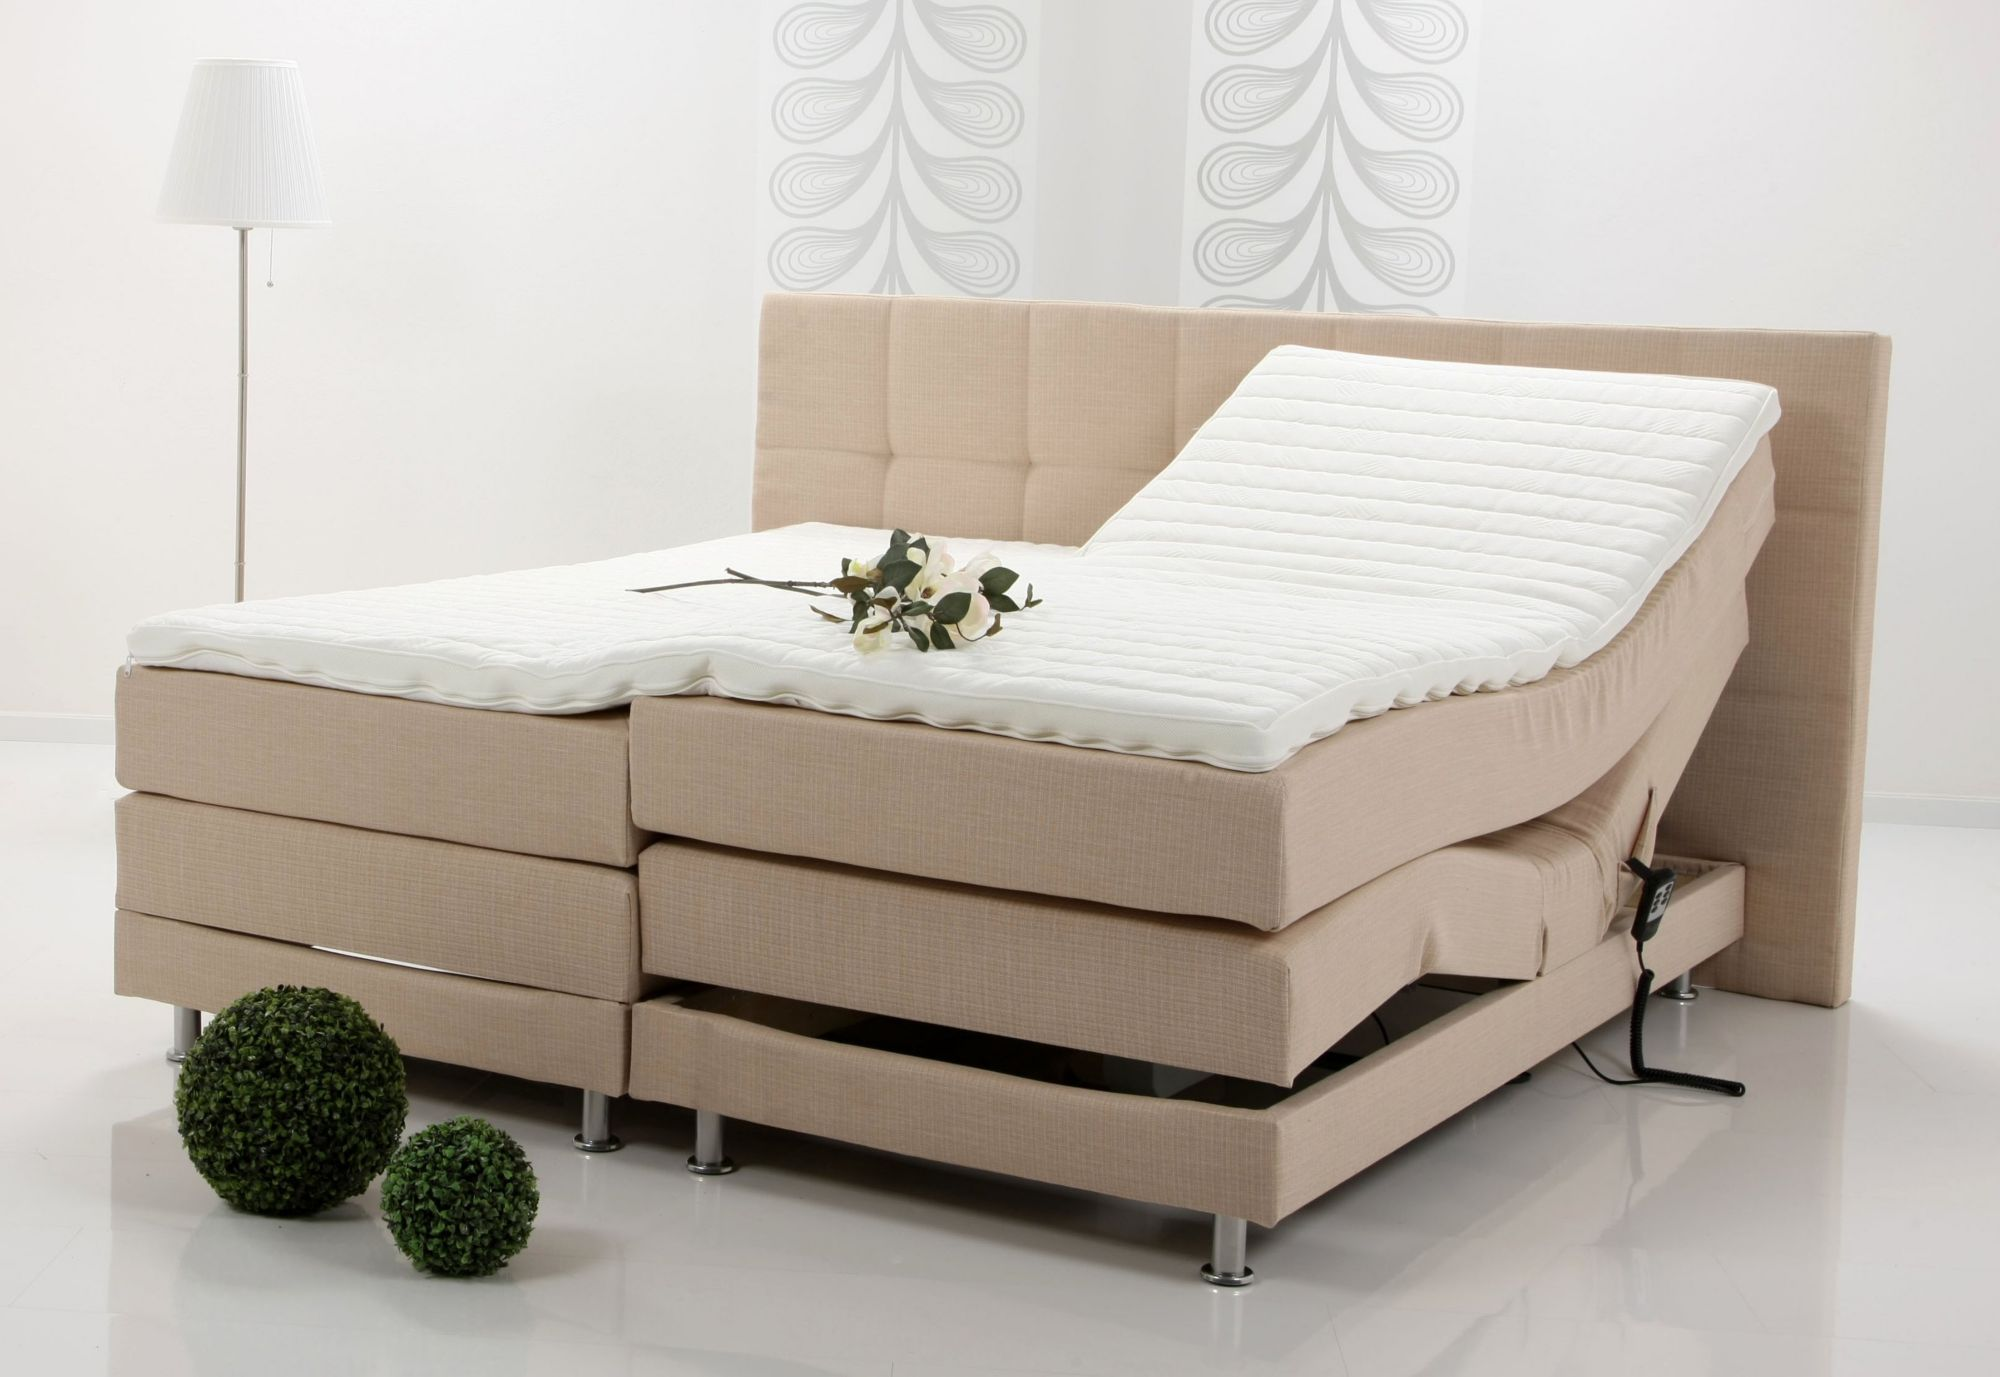 boxspringbett mit elektromotor breckle made in germany schwab versand k chenzeilen. Black Bedroom Furniture Sets. Home Design Ideas